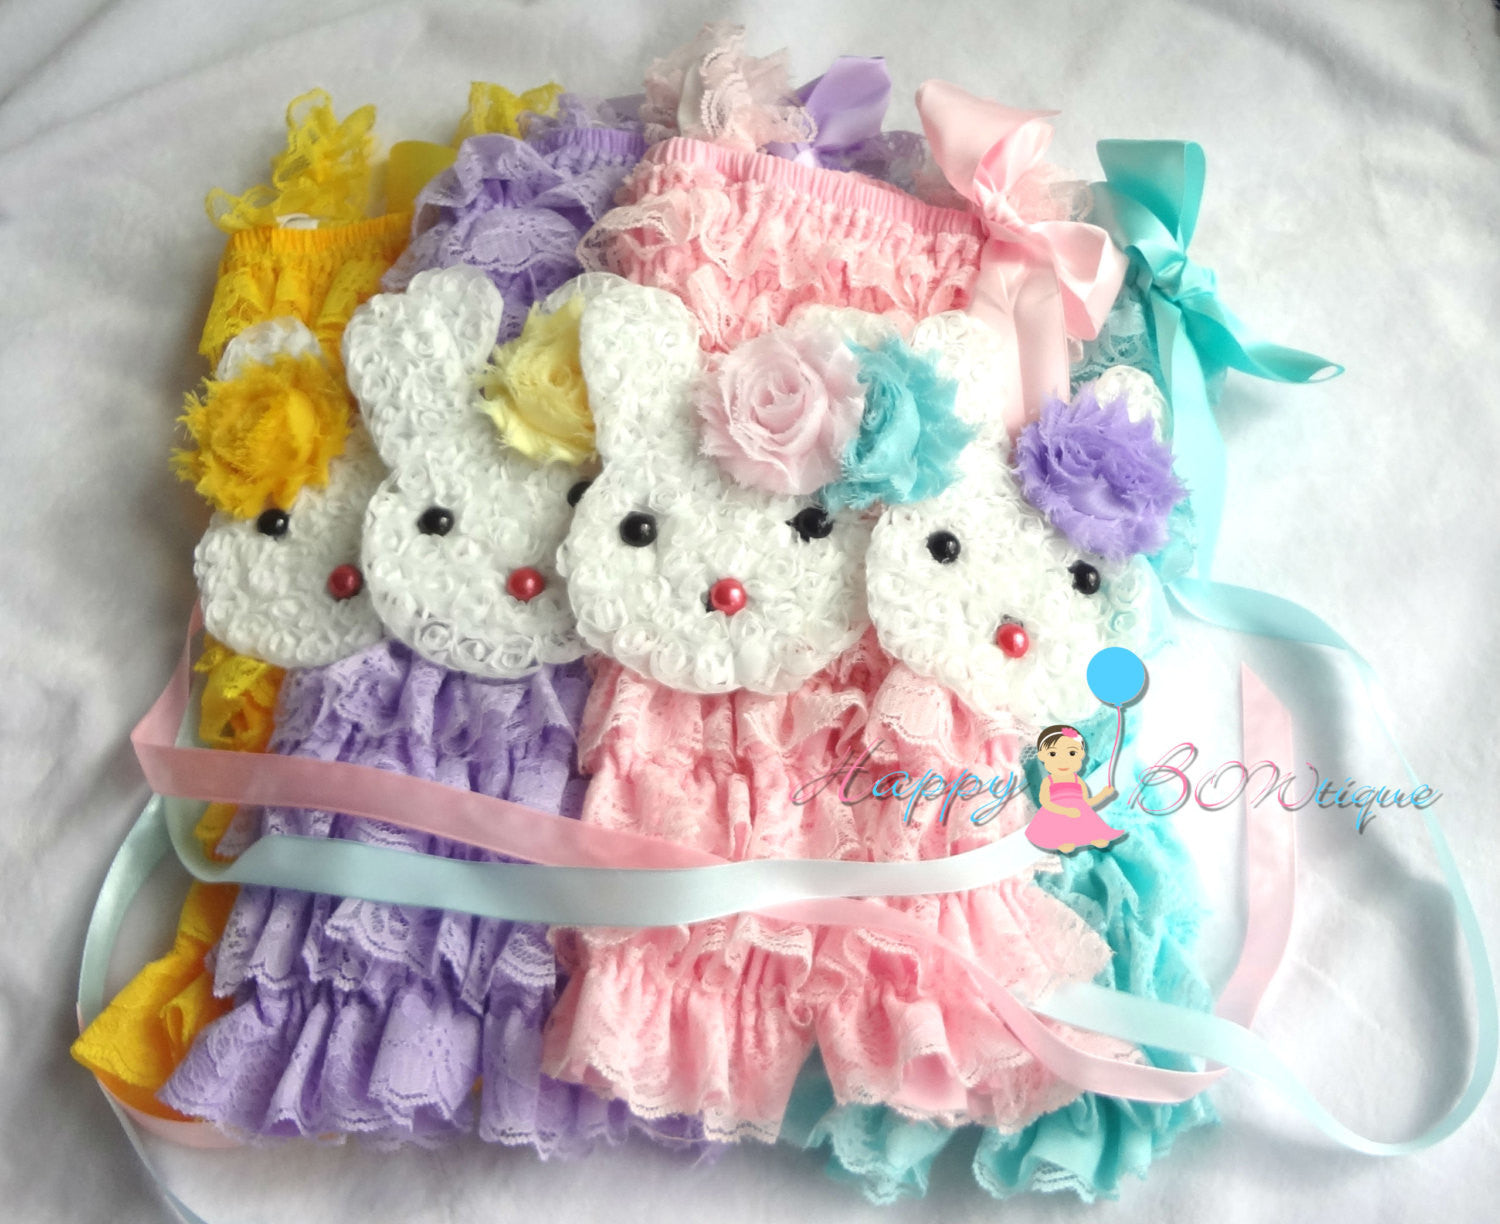 Easter Bunny Flower Sash/ Baby Girl's Easter Sash - Happy BOWtique - children's clothing, Baby Girl clothing